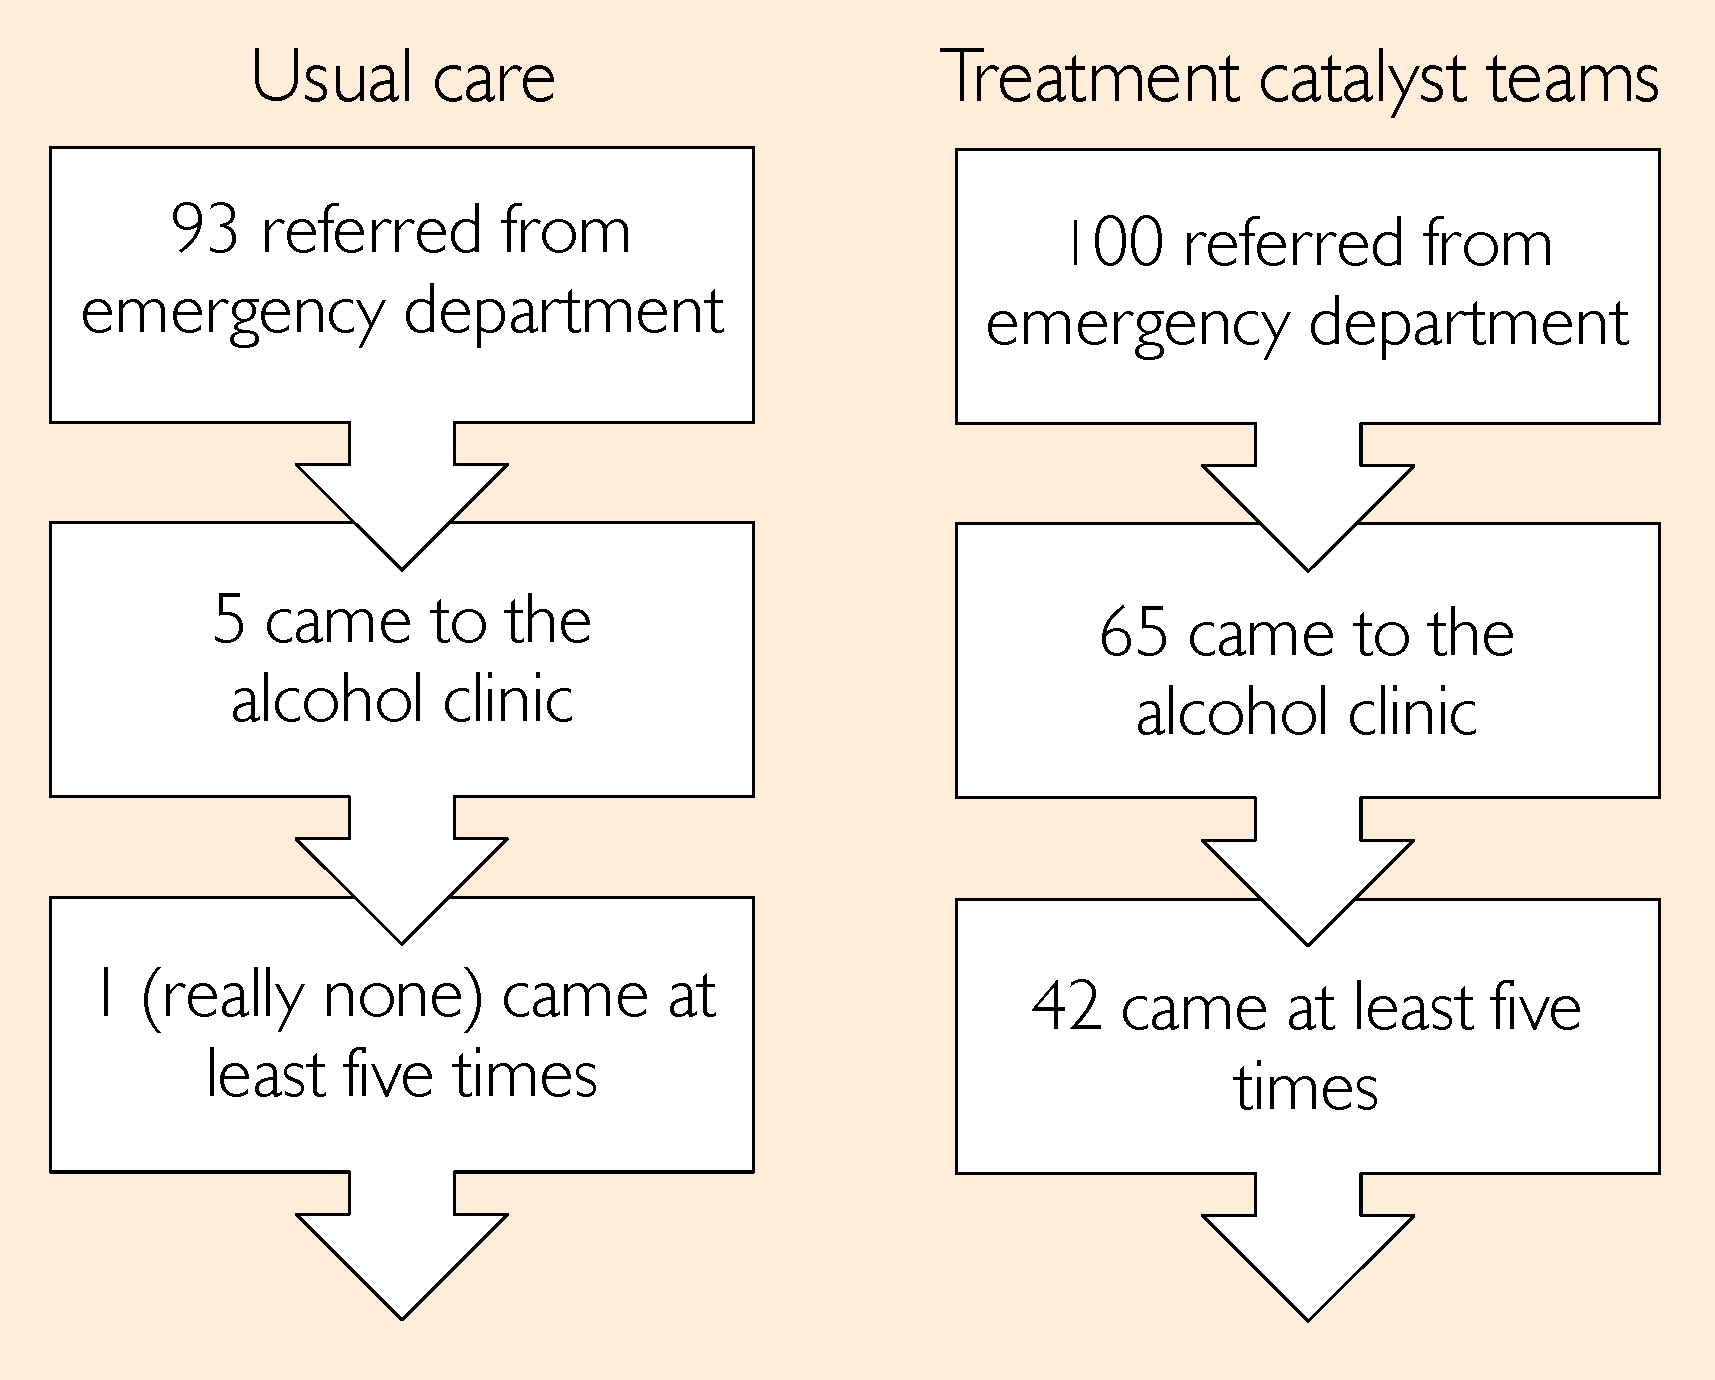 'Treatment catalyst' teams transformed clinic attendance.